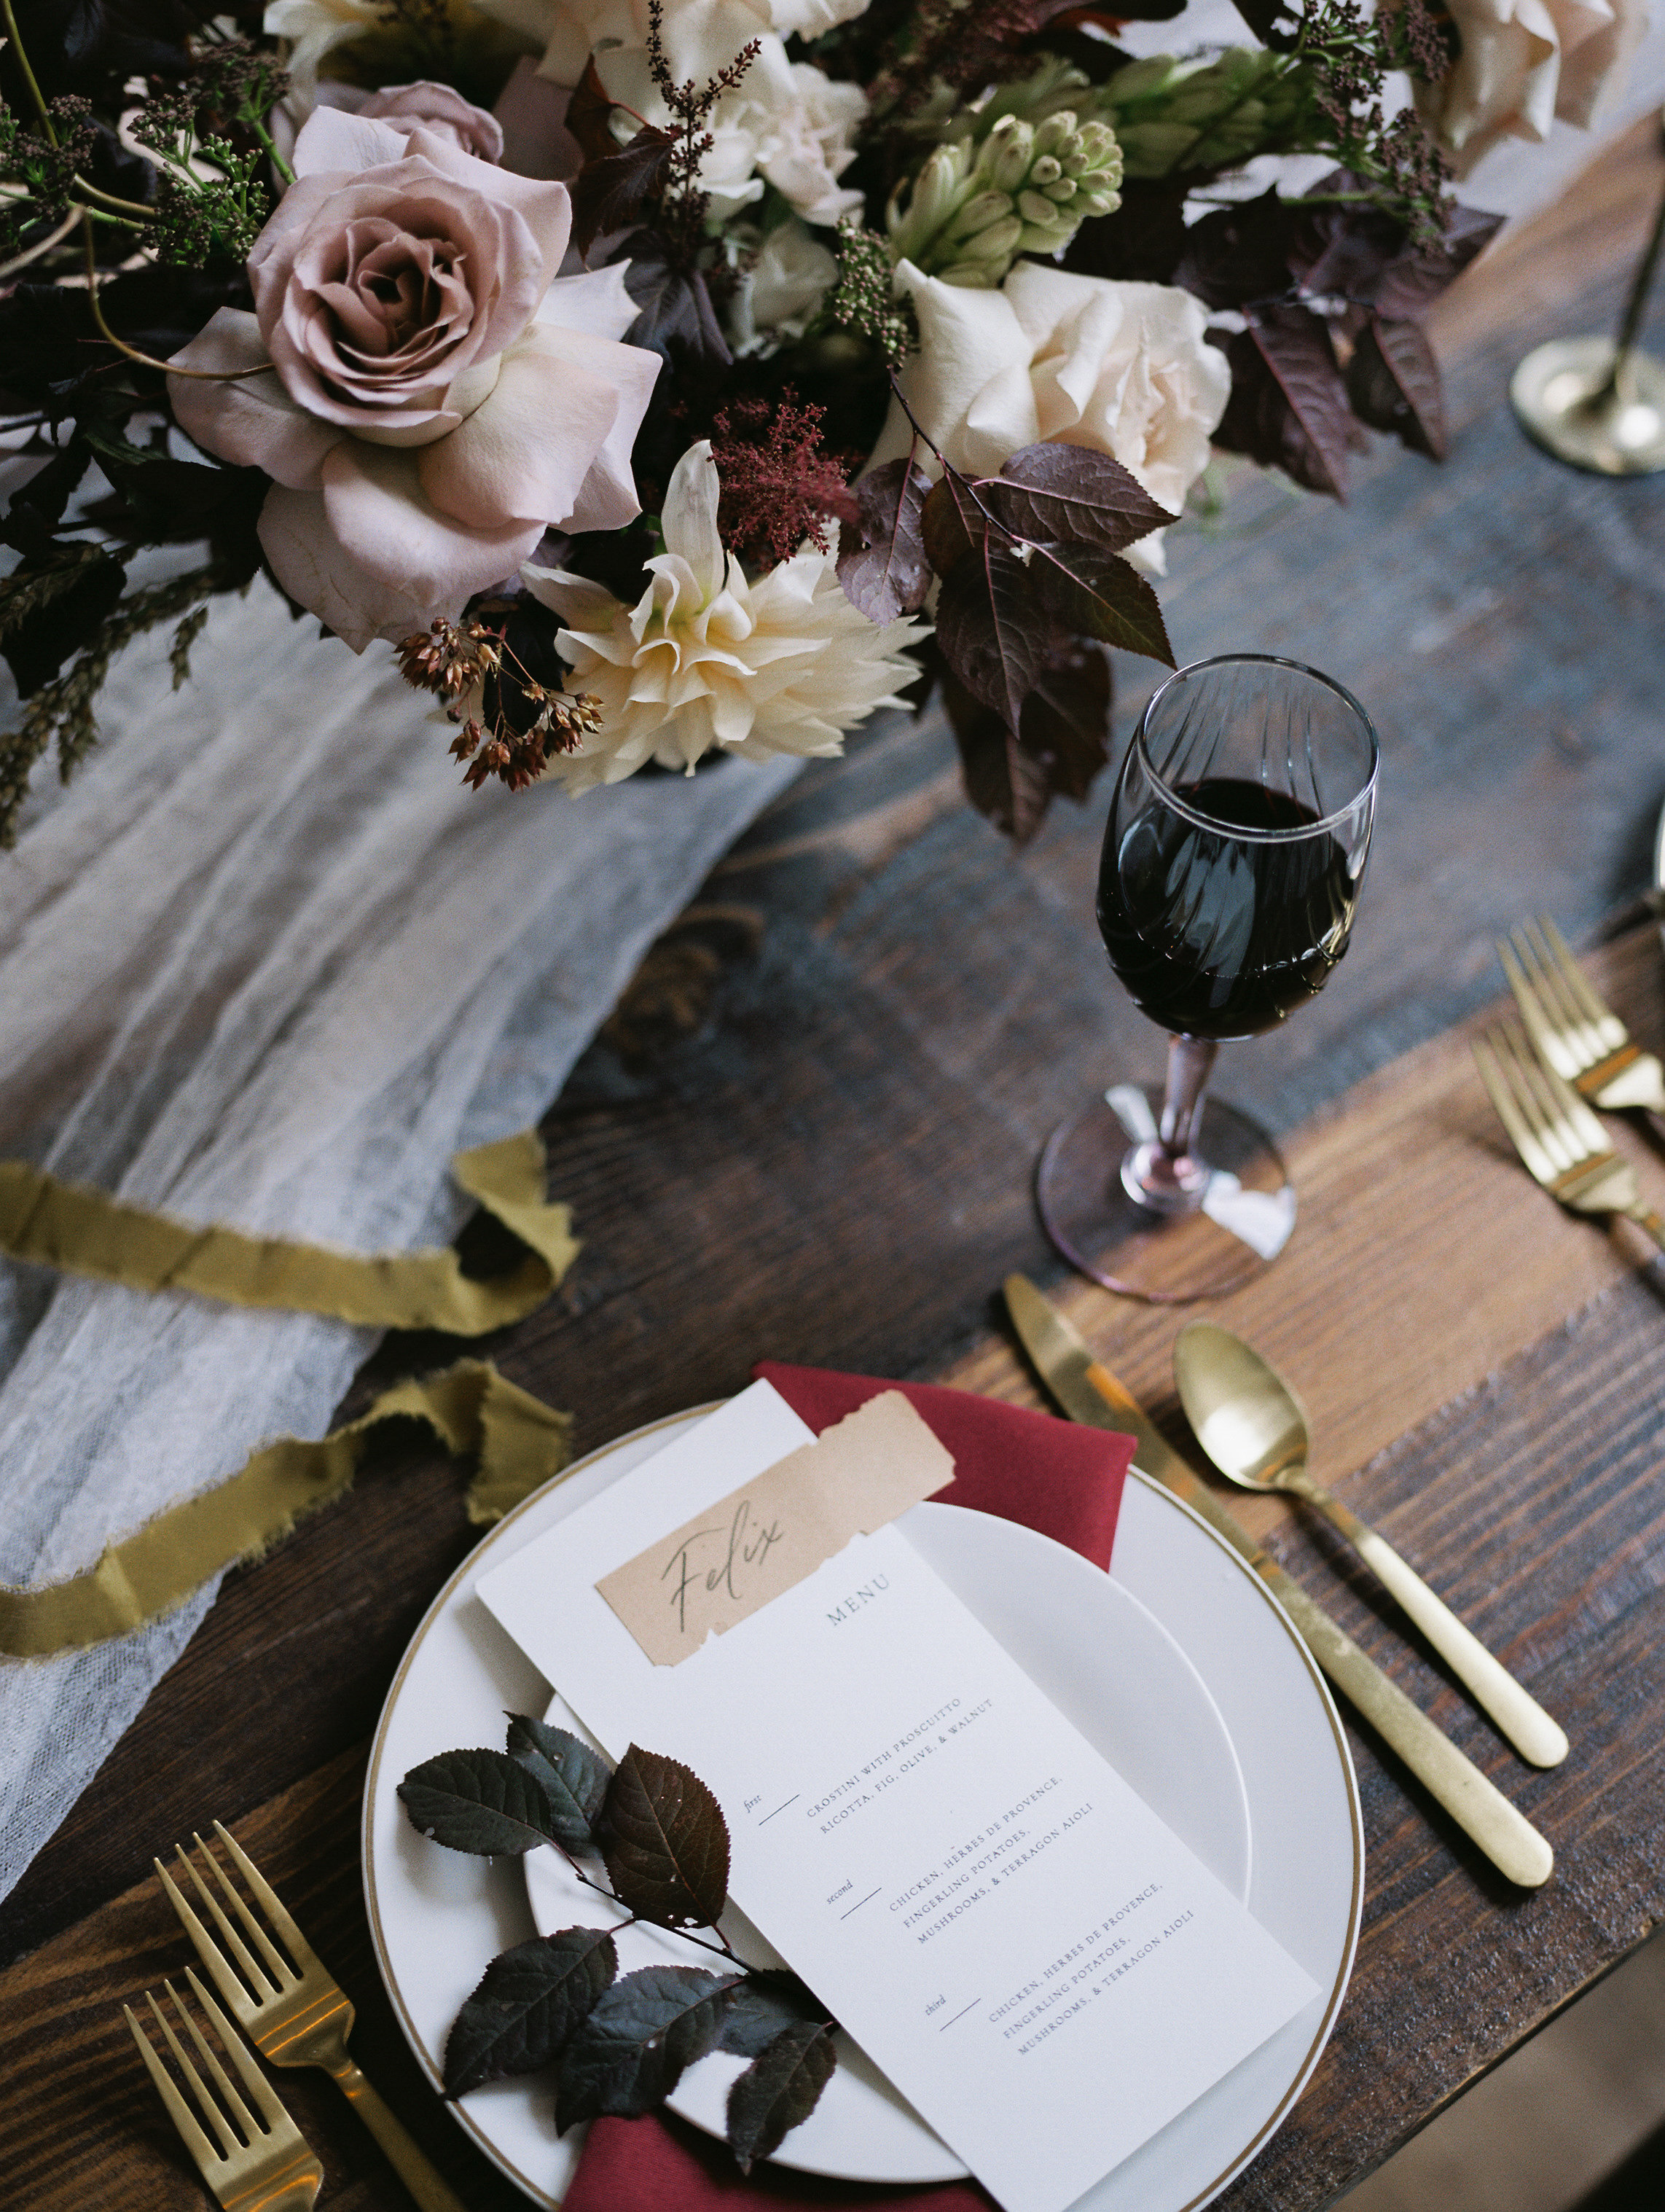 WHEN-SHE-KNEW-PHOTOGRAPHY-STYLED-WEDDING-EDITORIAL-OREGON-97.jpg